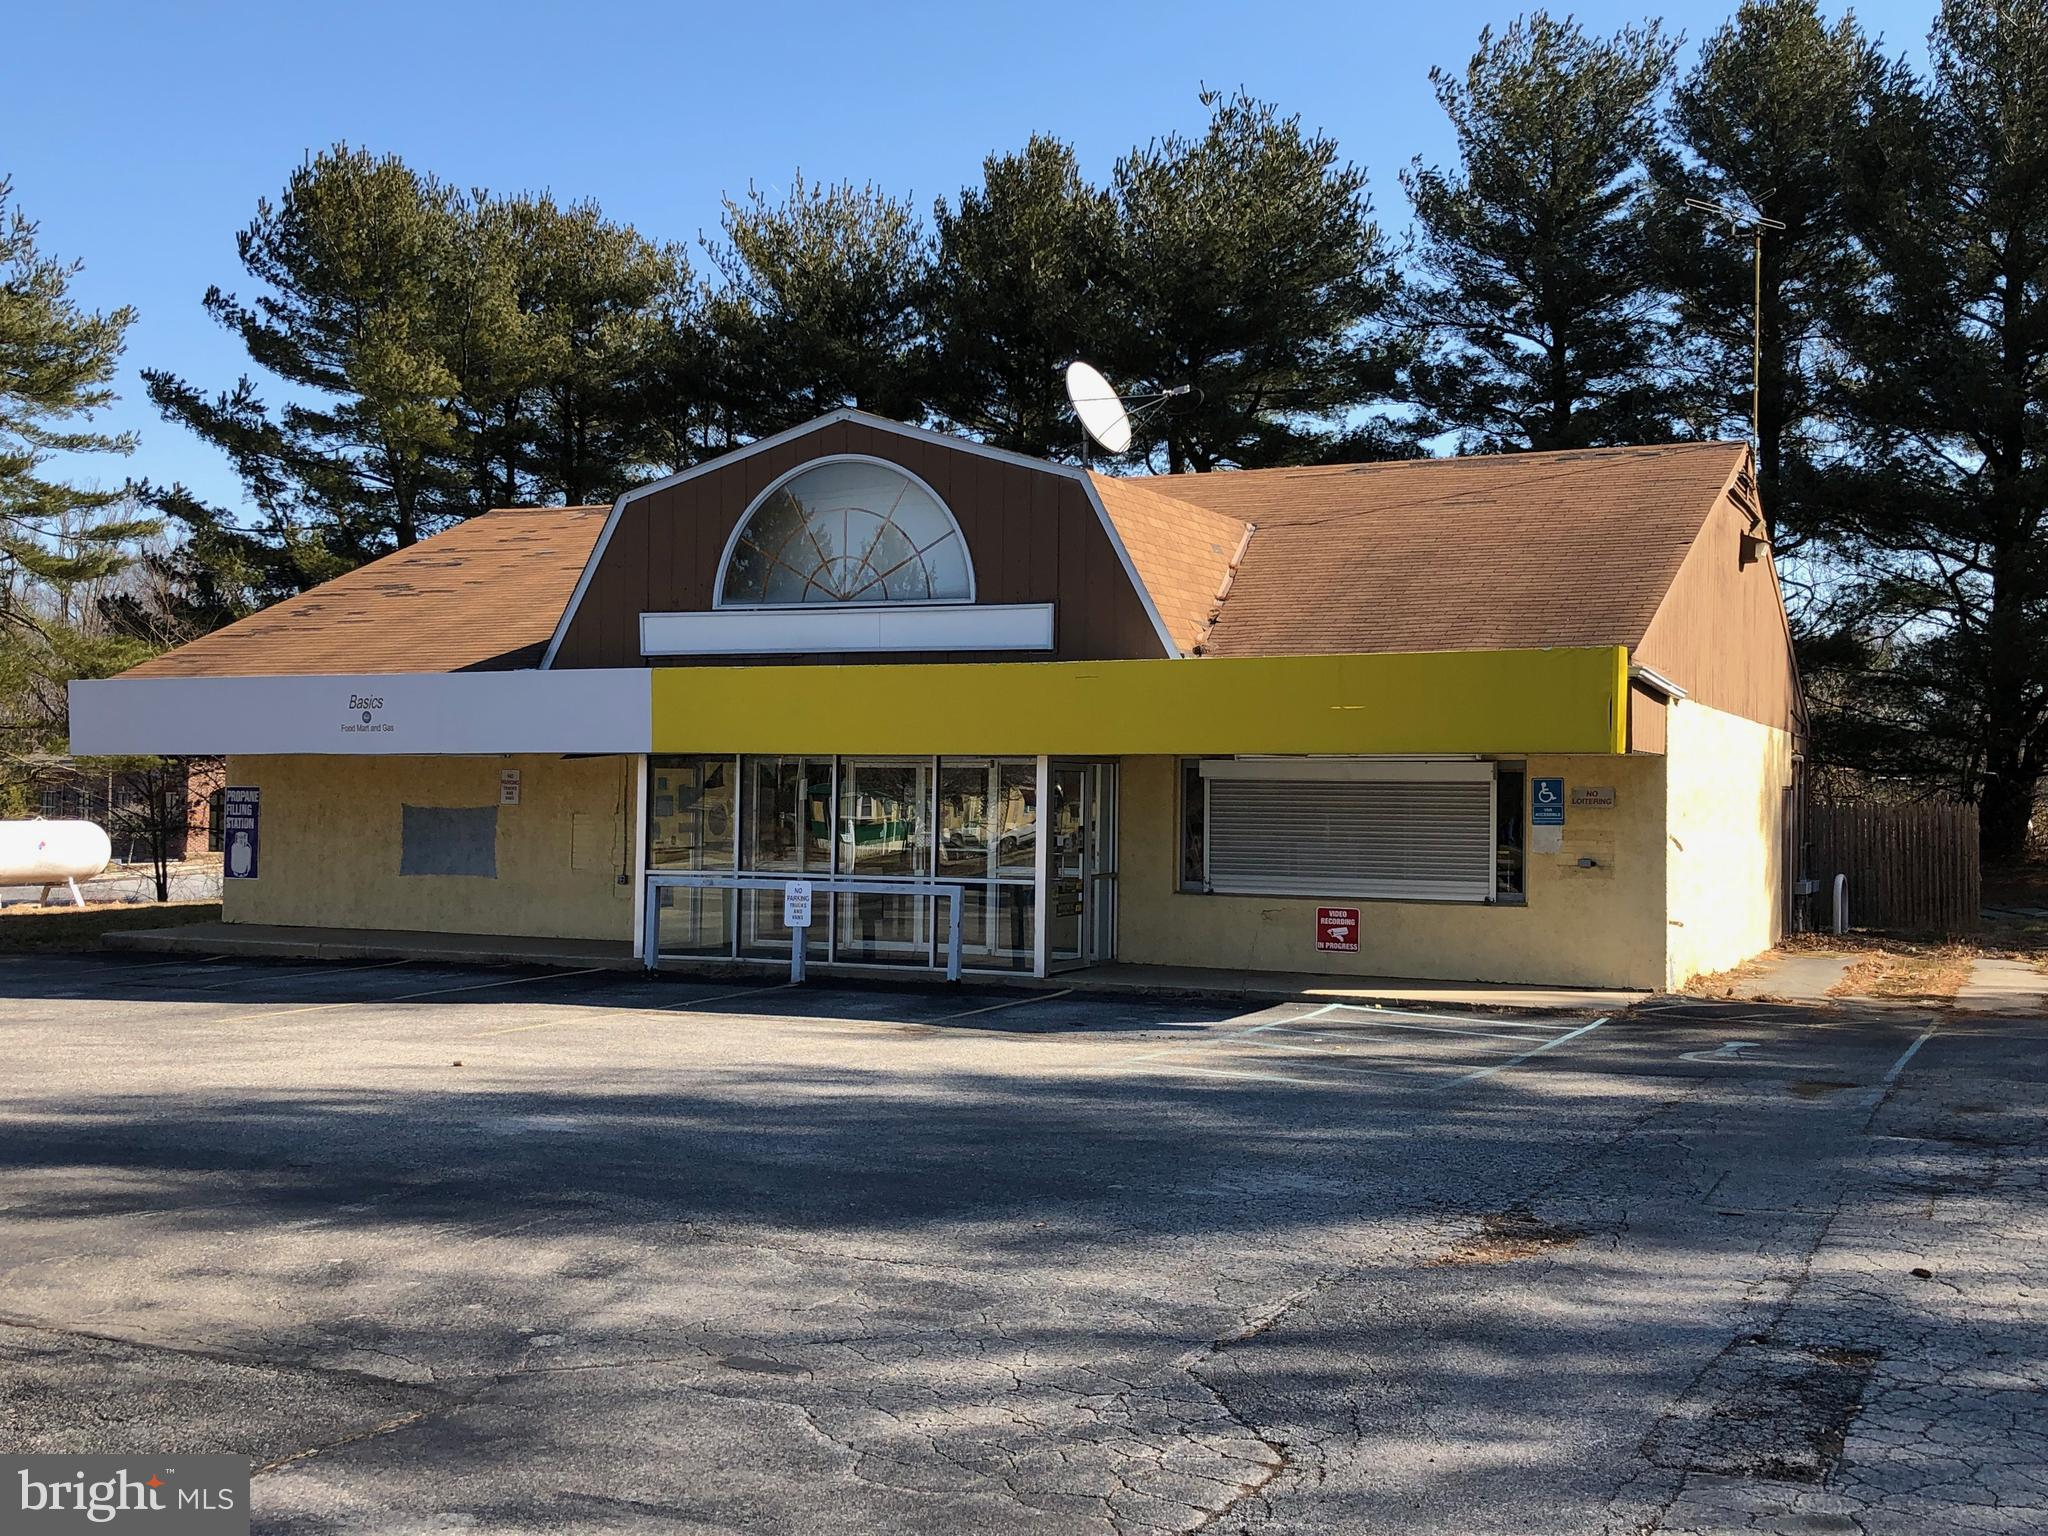 Approximately 2400sf convenience store/gas station for sale along PA-896, just 5 minutes (3.2 miles) from the Delaware state line and a thoroughfare for travelers from PA to Newark, DE area and The Chesapeake Bay. Approximately 1 acre lot with paved parking/handicap parking. Covered Gas pumps in front. Great Signage and visibility.